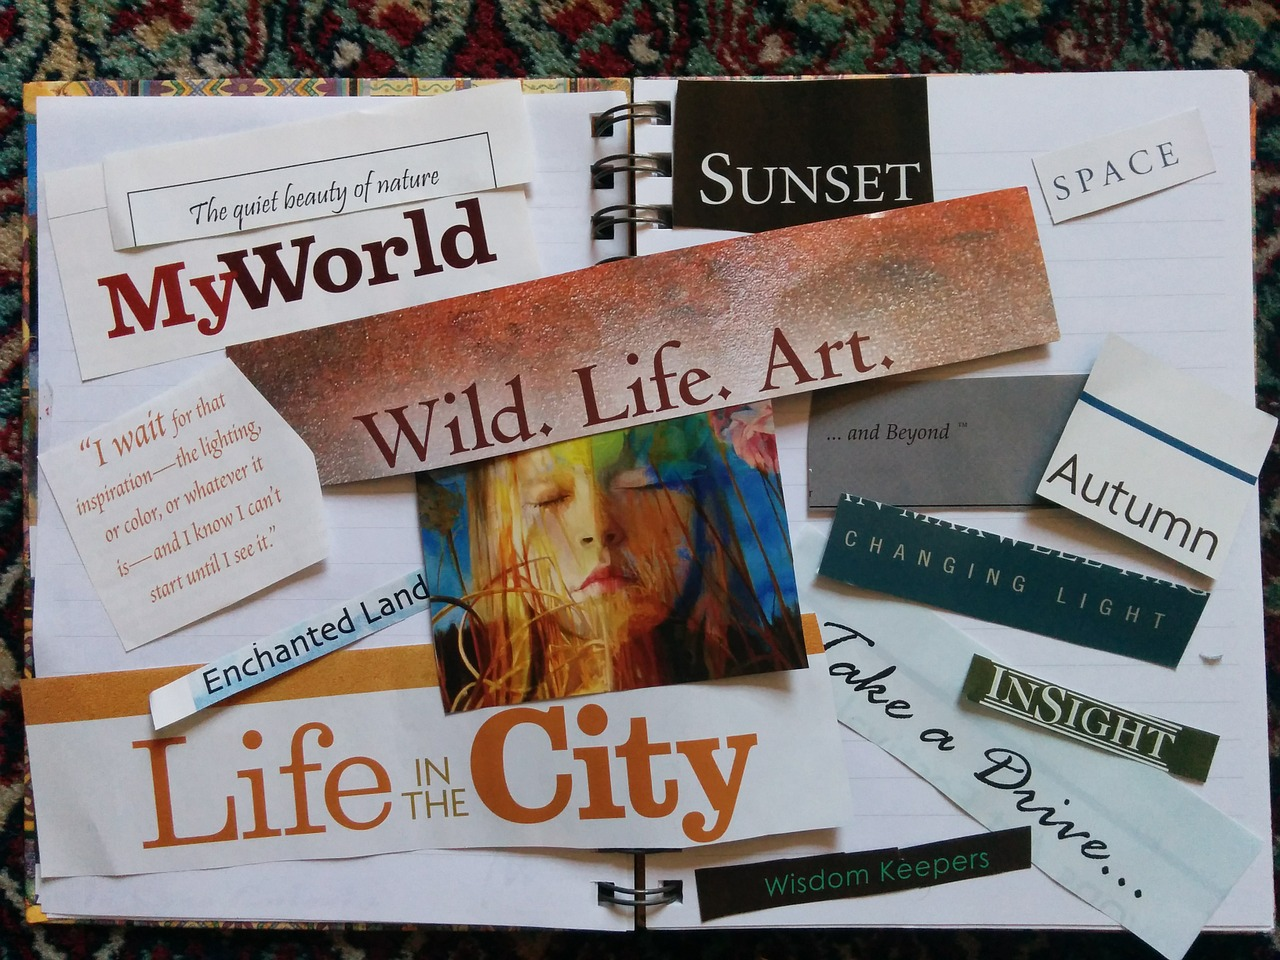 Vision Board Workshop and much more